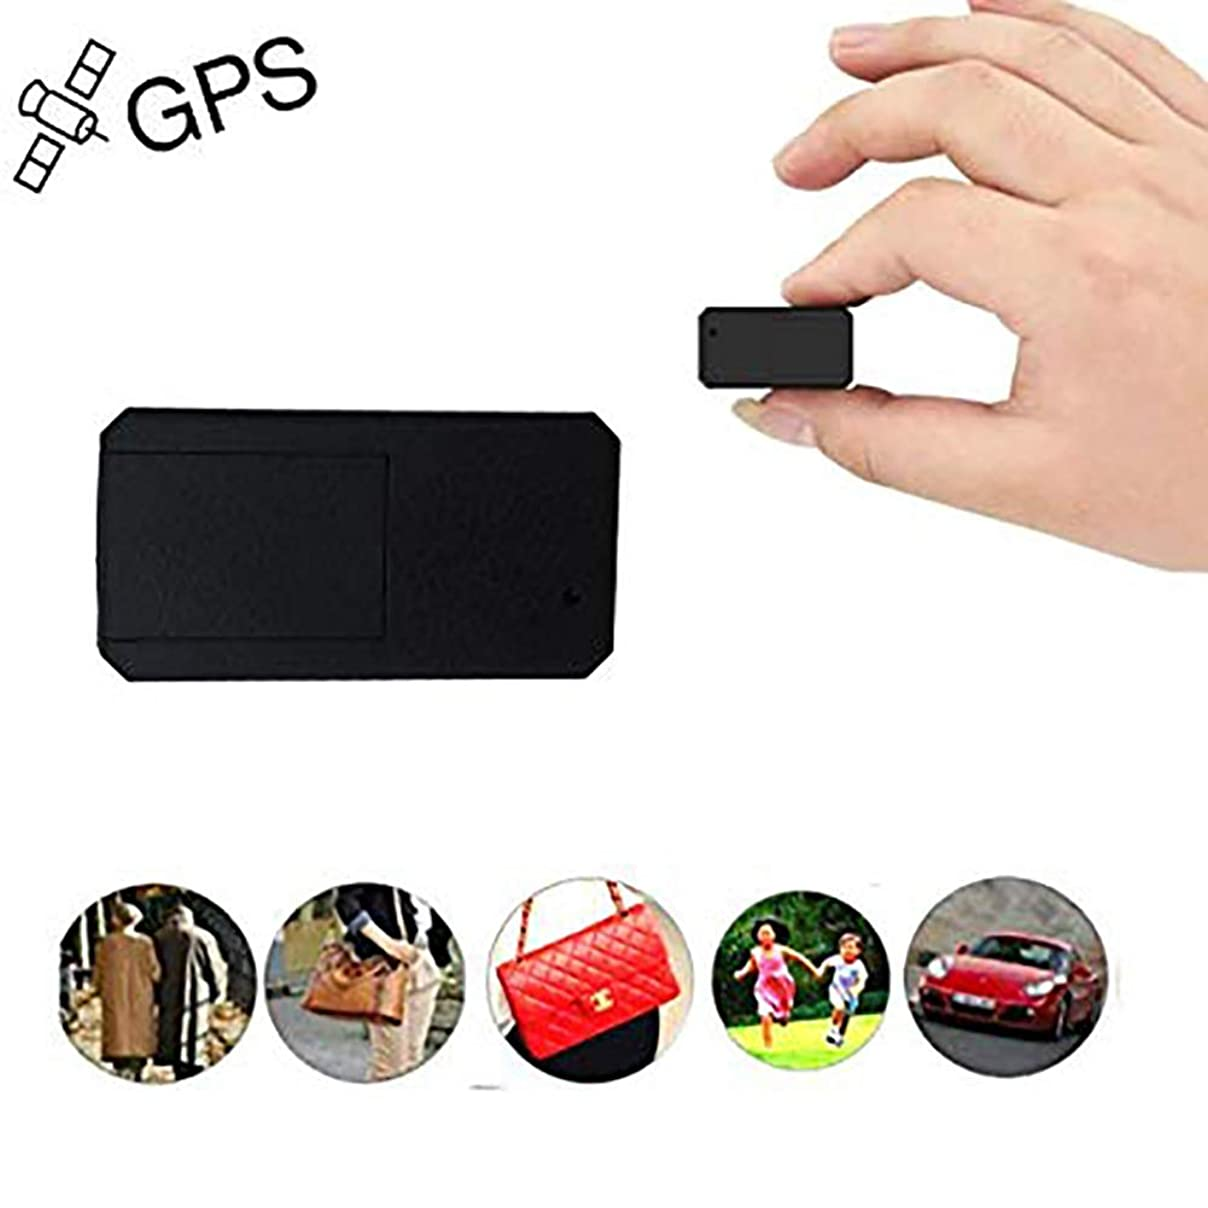 Hangang GPS,Mini GPS Car Tracker Anti Thief Real Time GPS Tracker Portable GPS Tracking Anti Loss GPS Locator Long Standby Time 200h for Purse Bag Wallet Bags Kids for iOS and Andriod mmpwl776340